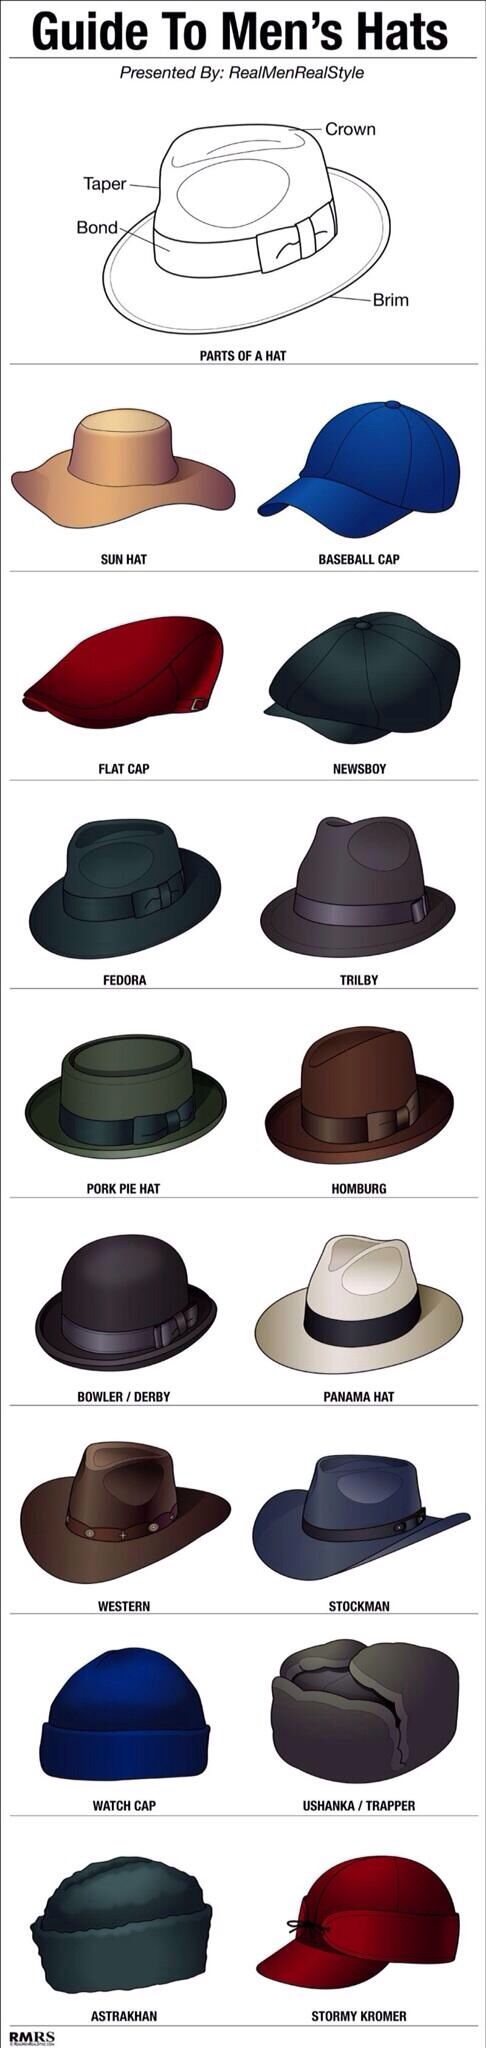 A Guide To Stylish Men's Hats